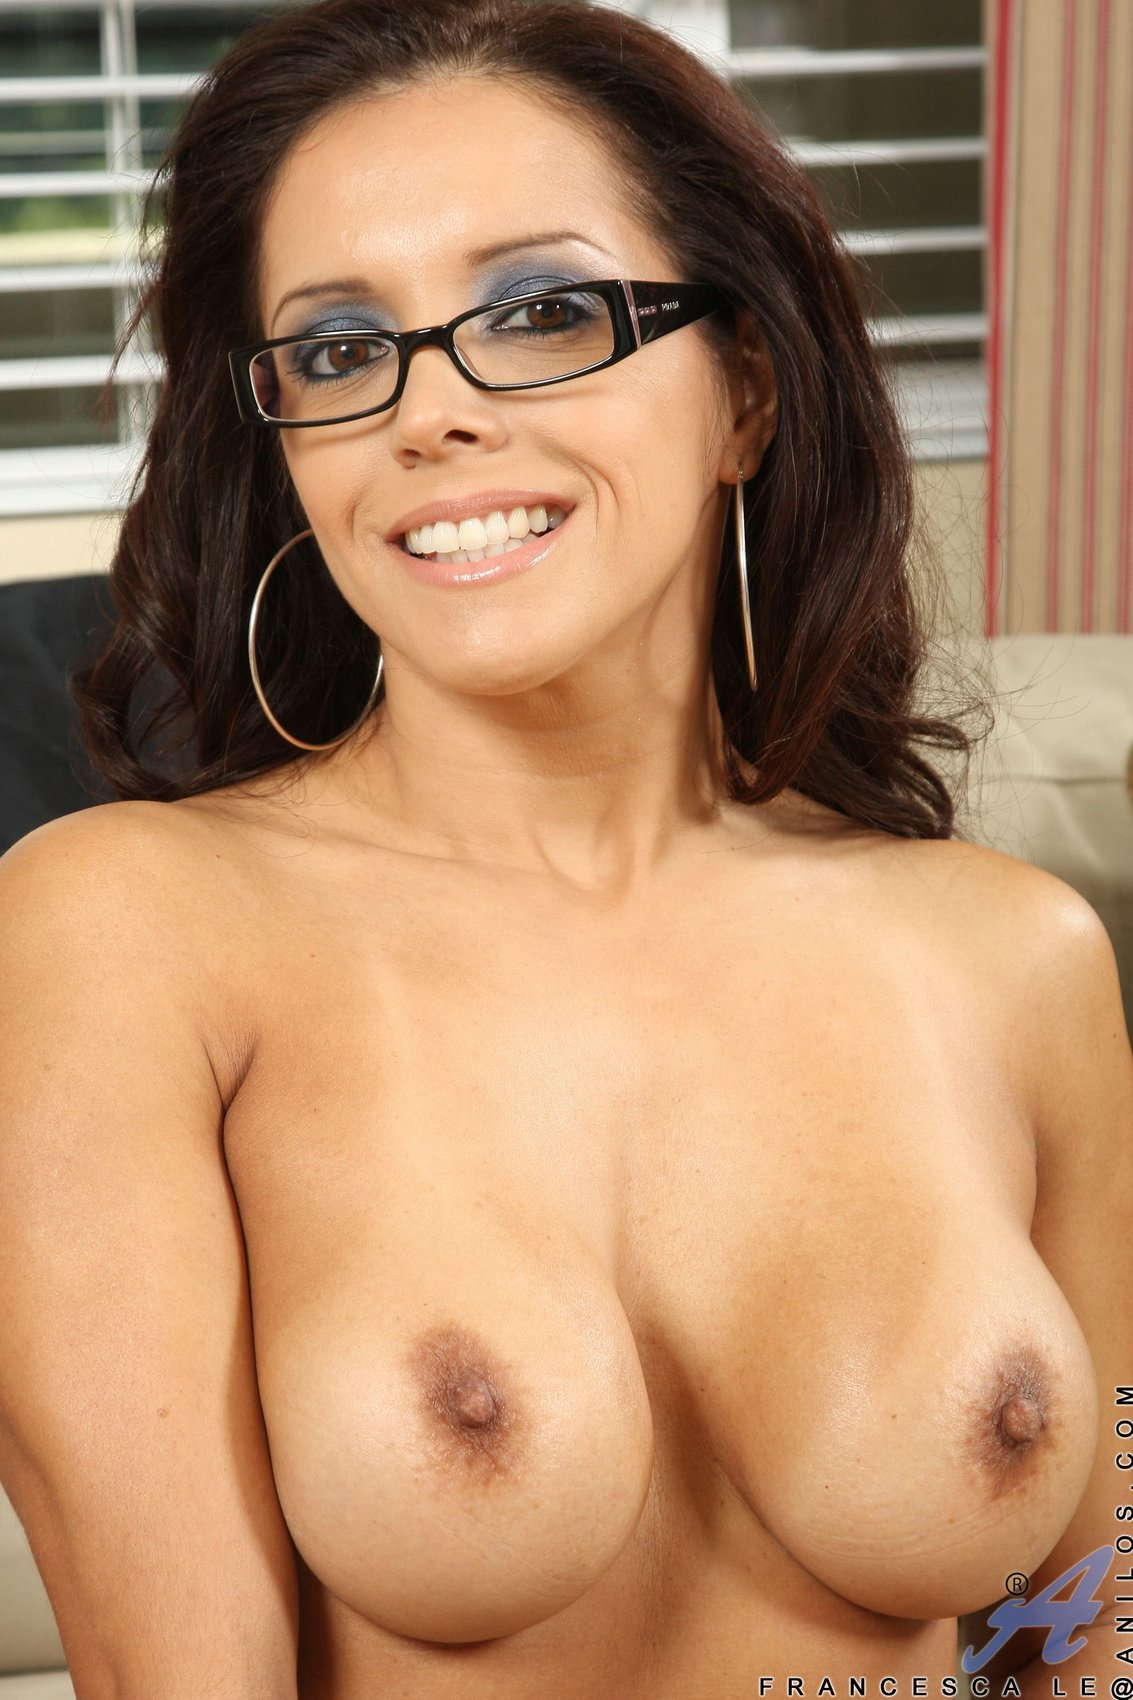 Hot latina strips and fucks herself on the couch 9